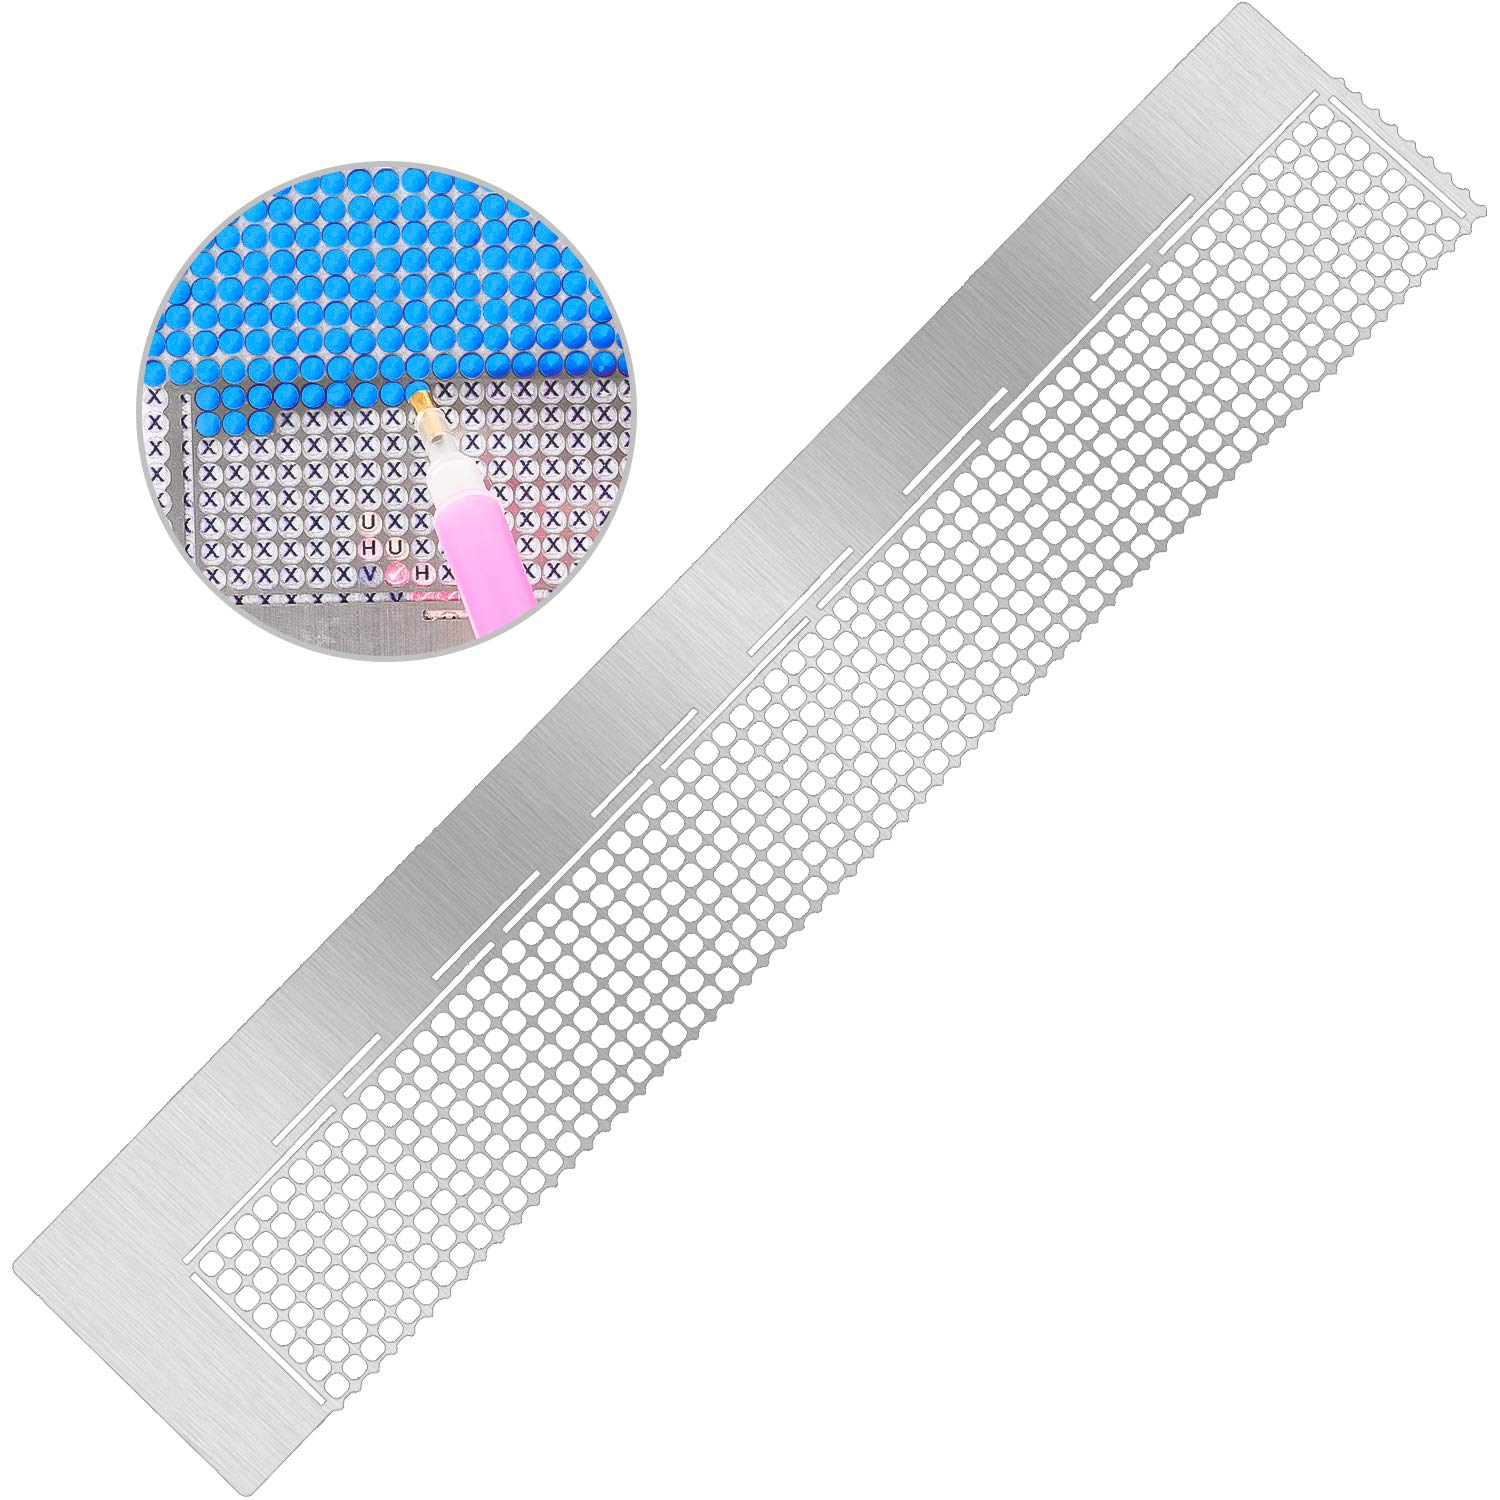 Whaline Diamond Painting Tool Stainless Steel Ruler Diamond Drawing Tool with 520 Blank Grids for Diamond Painting Round Full Drill & Partial Drill by Whaline